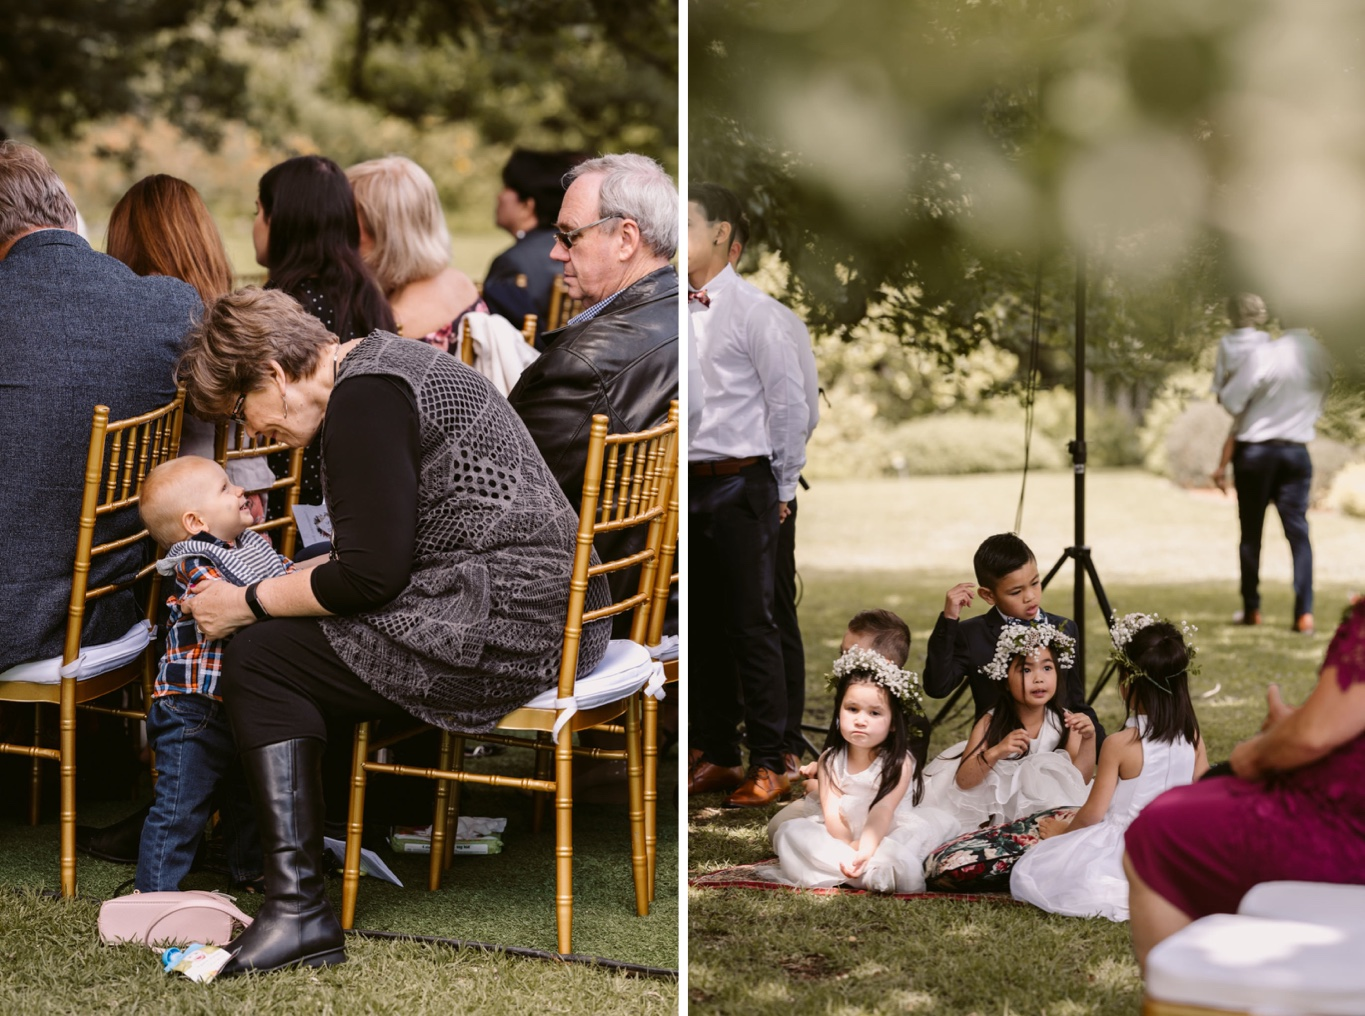 Gather and Tailor Melbourne Wedding Photography-110_Gather and Tailor Melbourne Wedding Photography-111.jpg